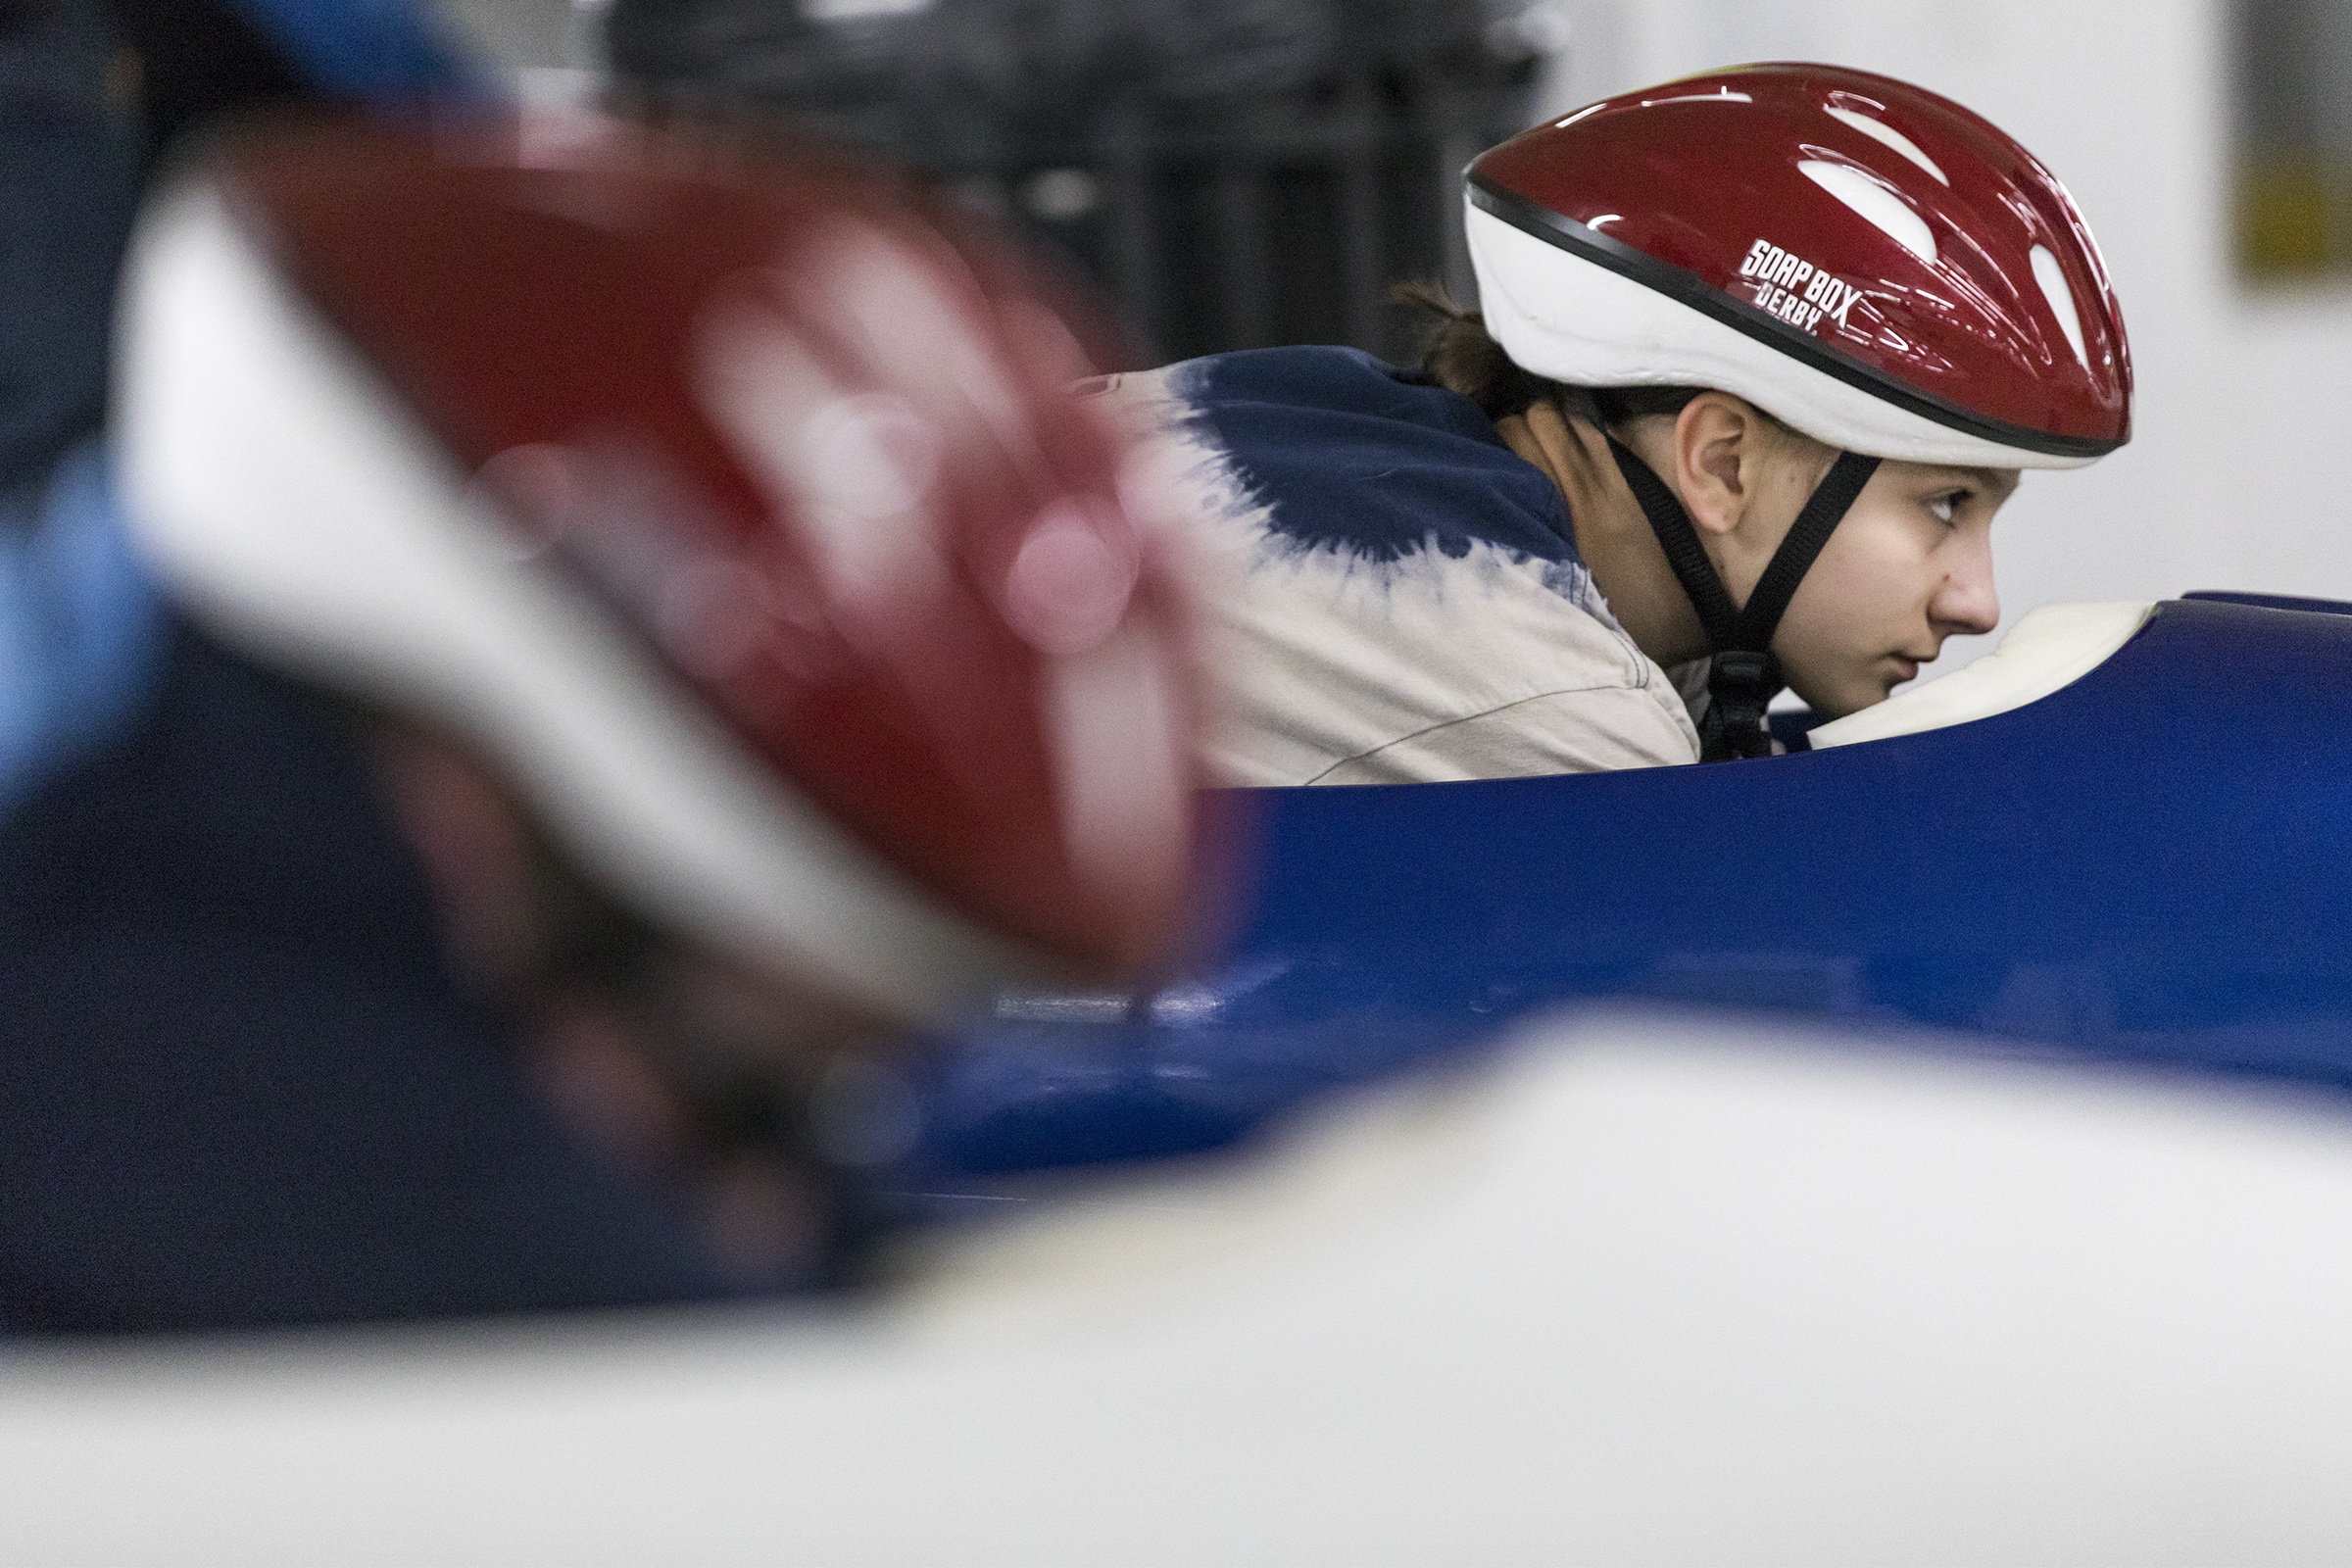 Sarah Szegedi, 13, of Belmont, looks ahead at the course before racing in the Arlington Soap Box Derby at the Cambridgeside Mall on Mar. 17, 2019.